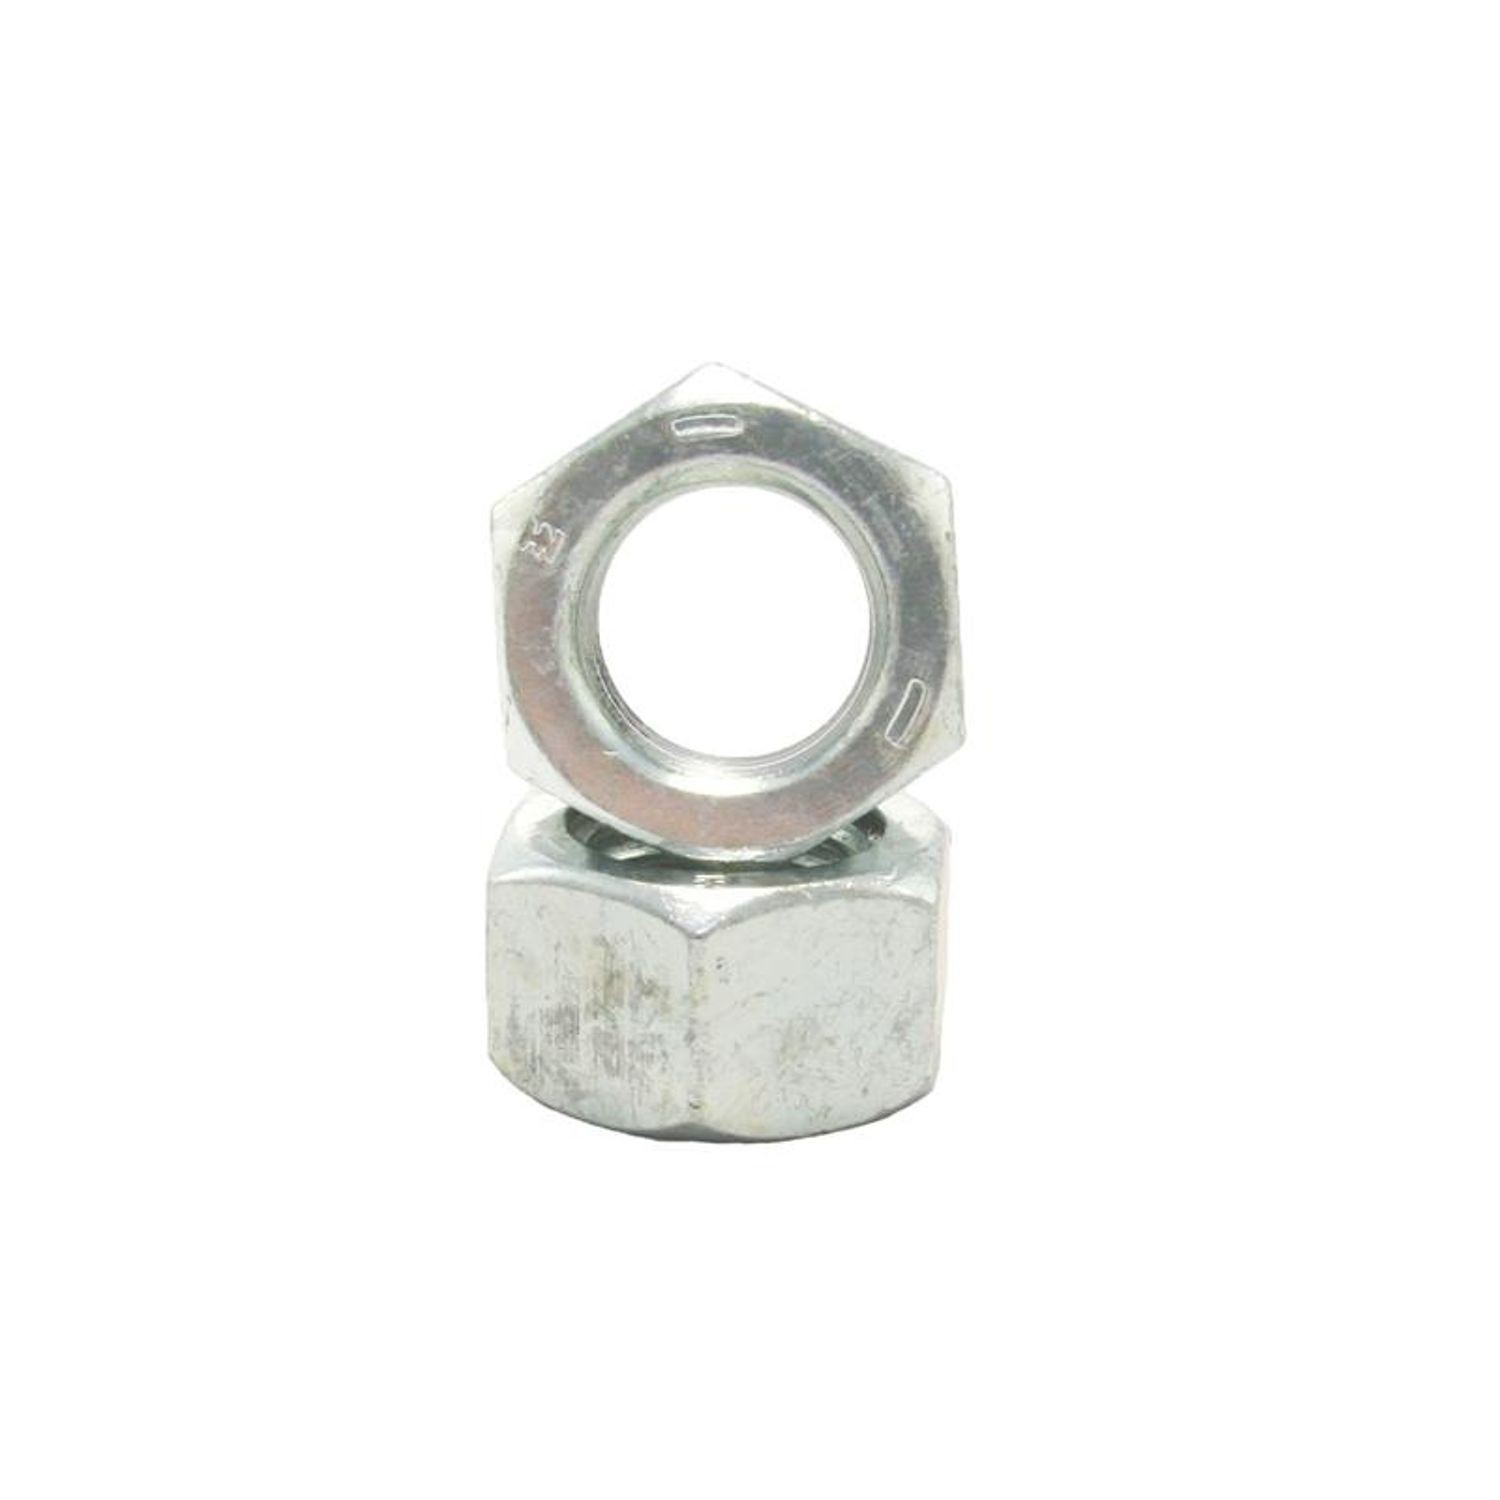 1-1//8-7 Hex Nut Stainless Steel Grade 18-8 Full Finished Qty 10